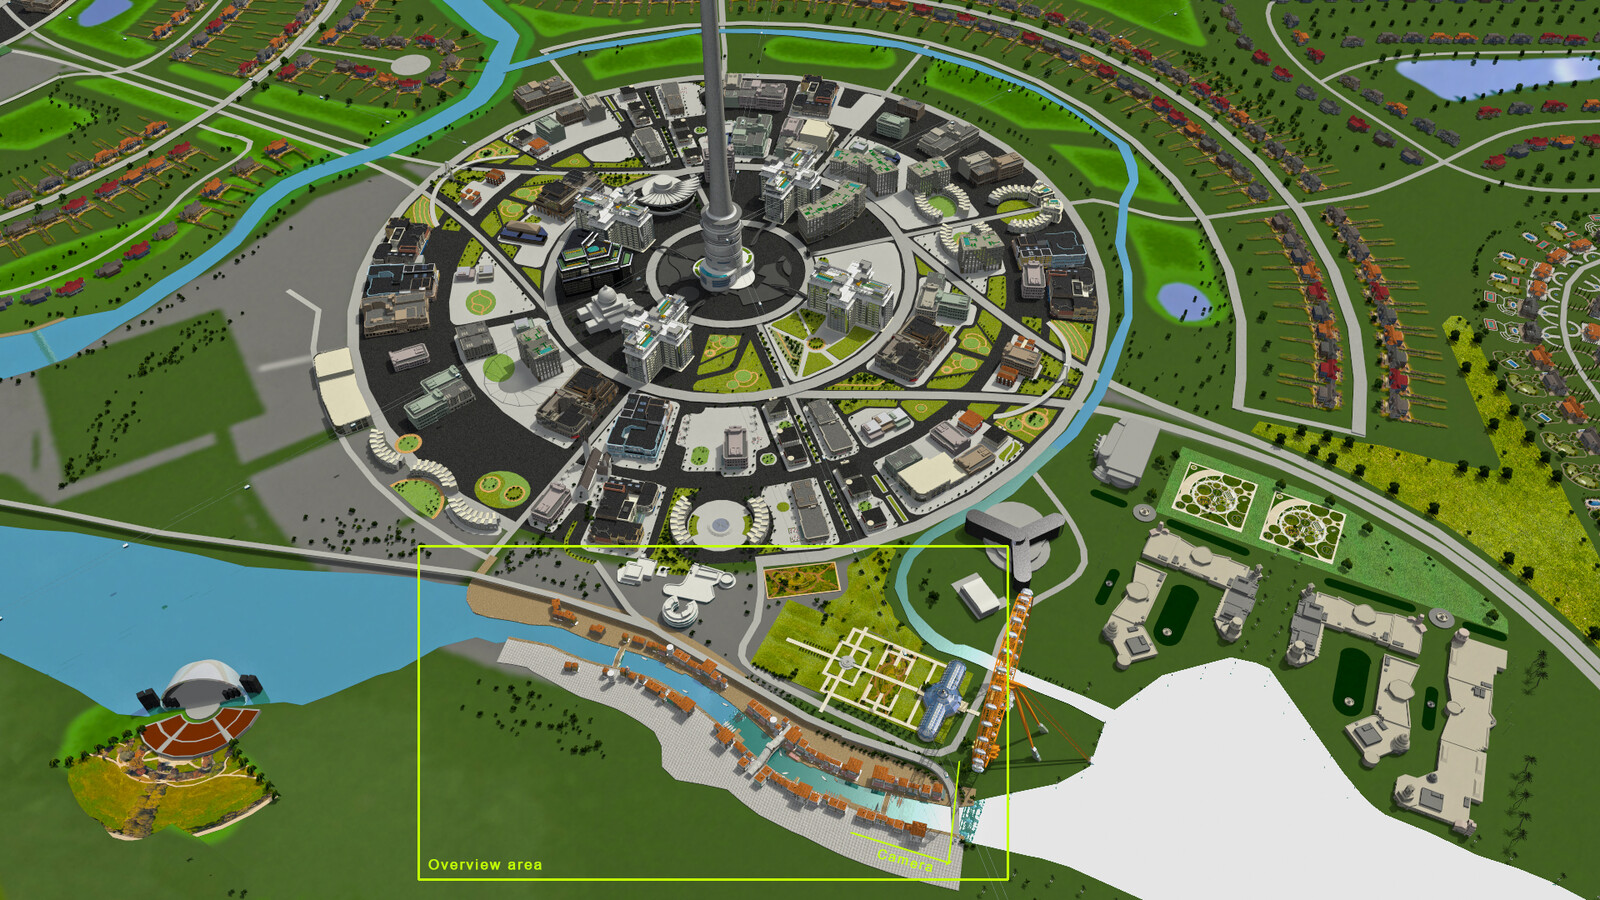 Staging and location of scene in the overall cityscape.  City design was developed by Thang Le, Ben Grangerau and Chris Voy.